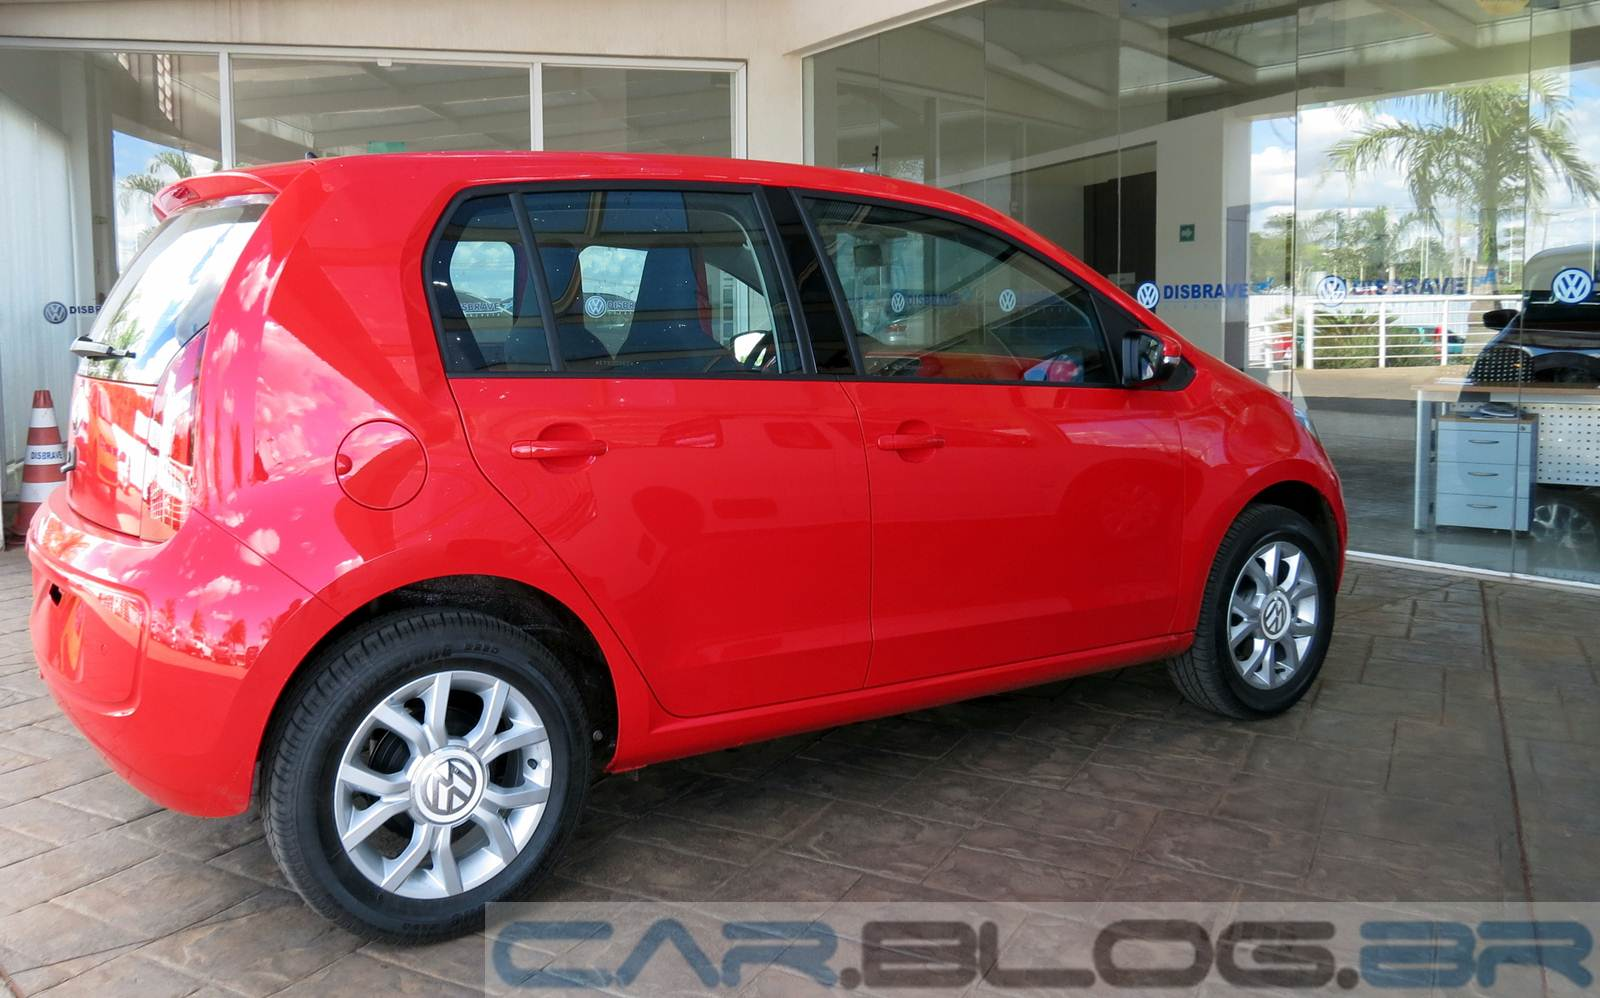 Volkswagen up! - test-drive